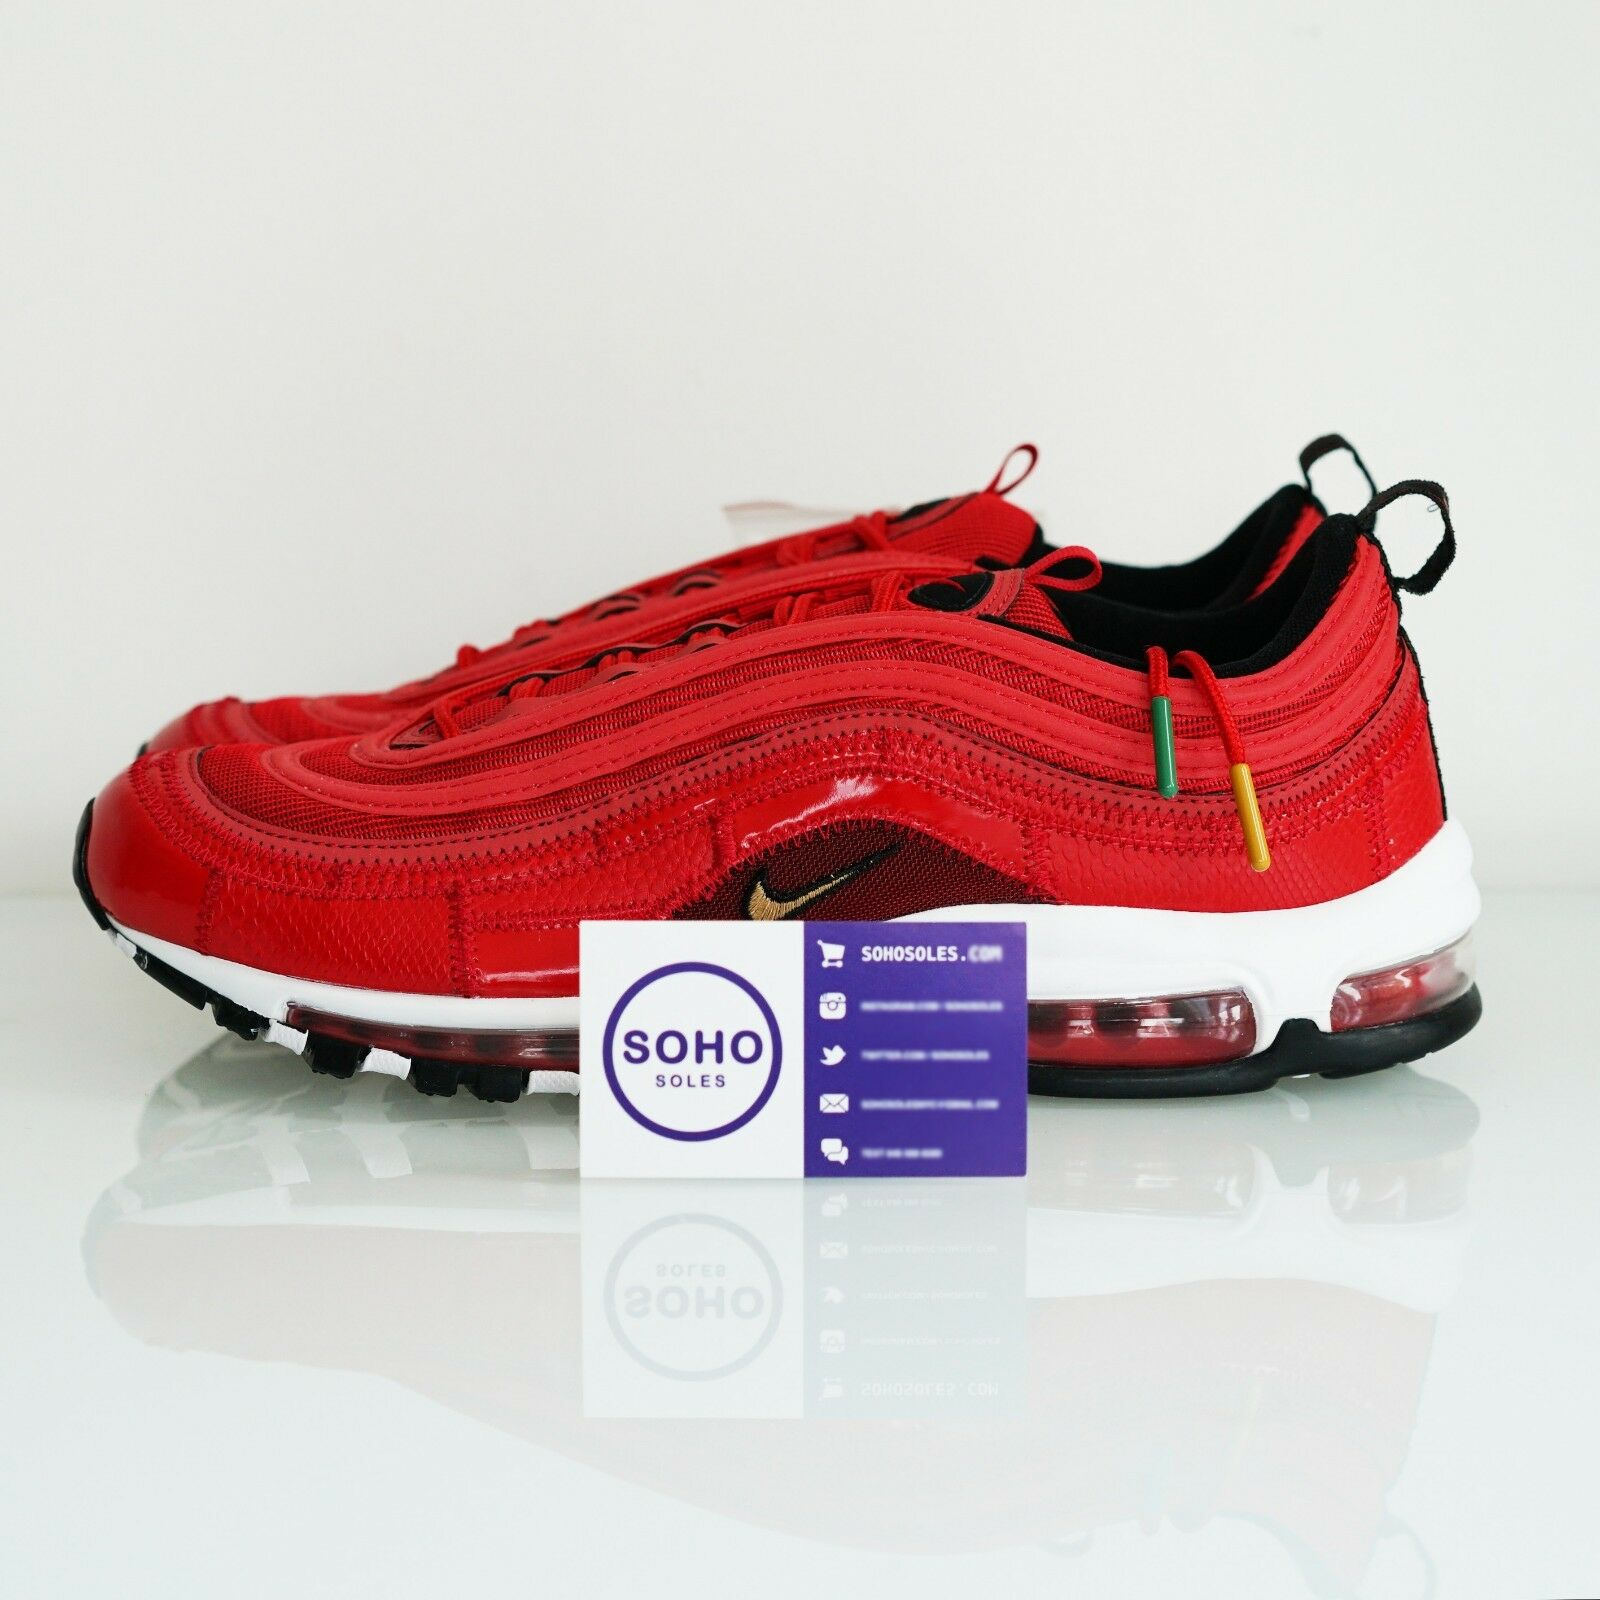 09058f0aa6 NIKE AIR MAX 97 CRISTIANO RONALDO PORTUGAL PATCHWORK AQ0655 600 8 CR7 SIZE  nztdcm1083-Athletic Shoes